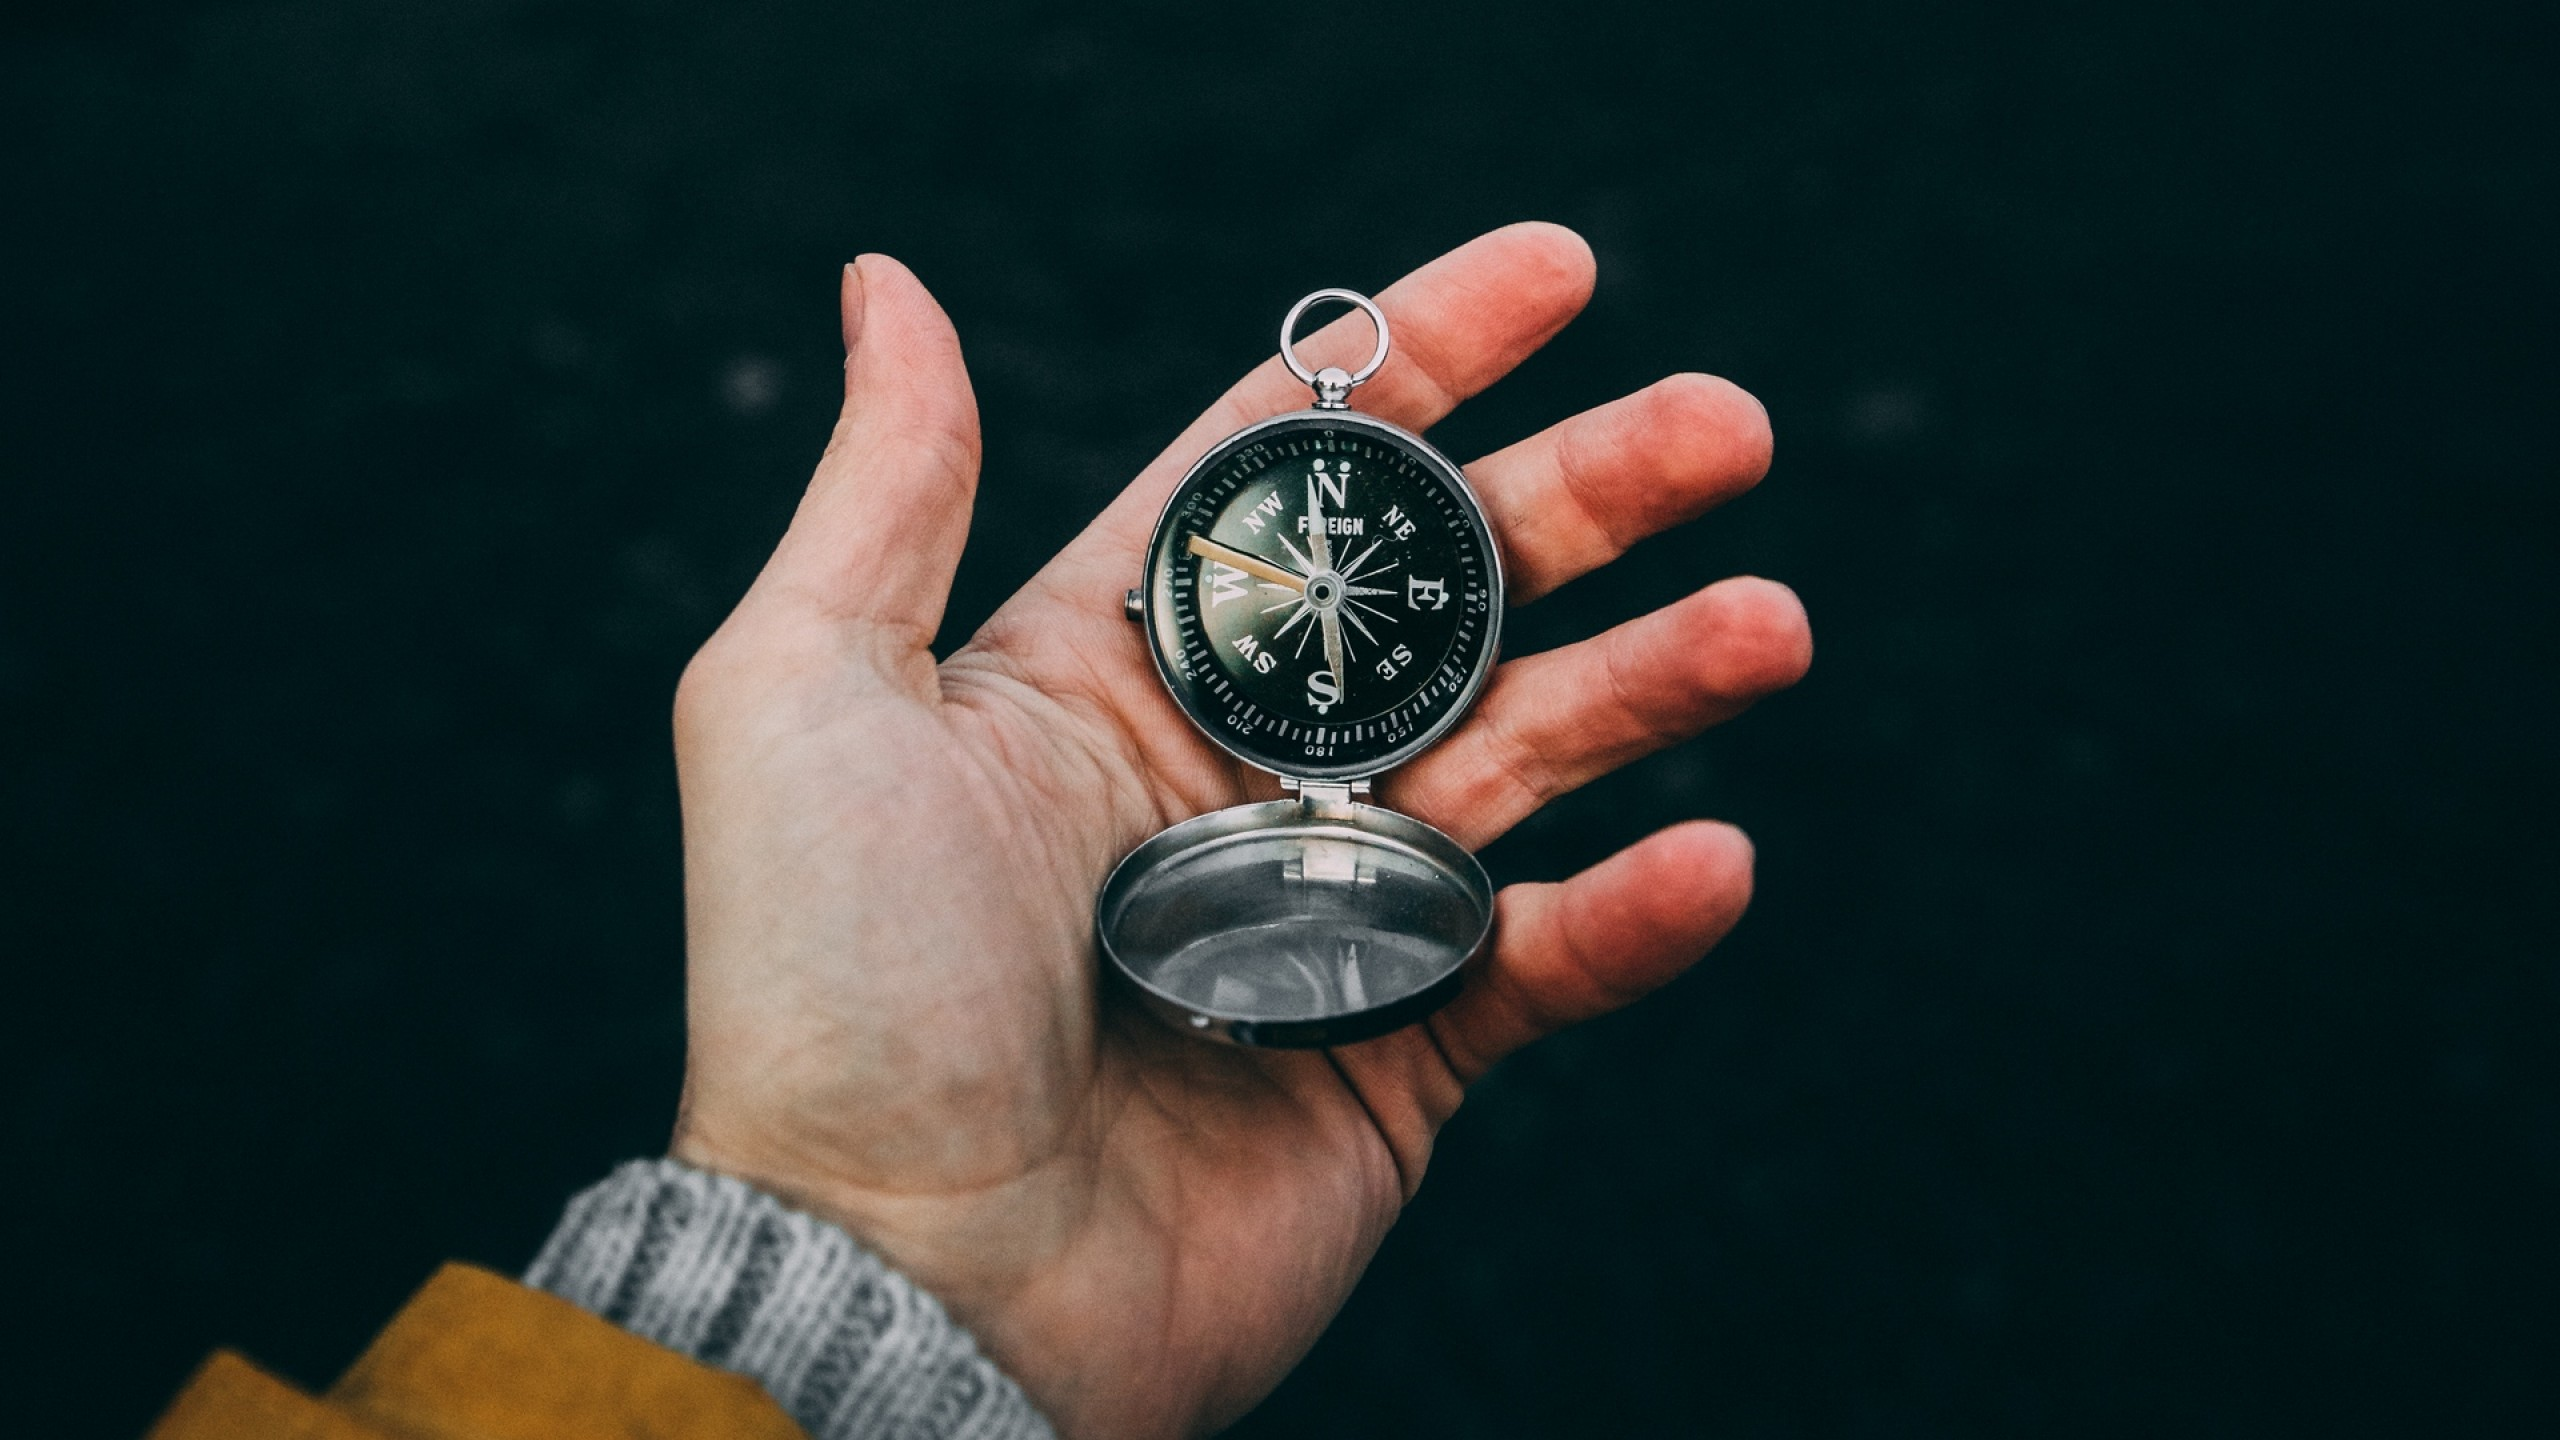 Compass at the hand of tourist HD Wallpaper Youtube Cover Ph